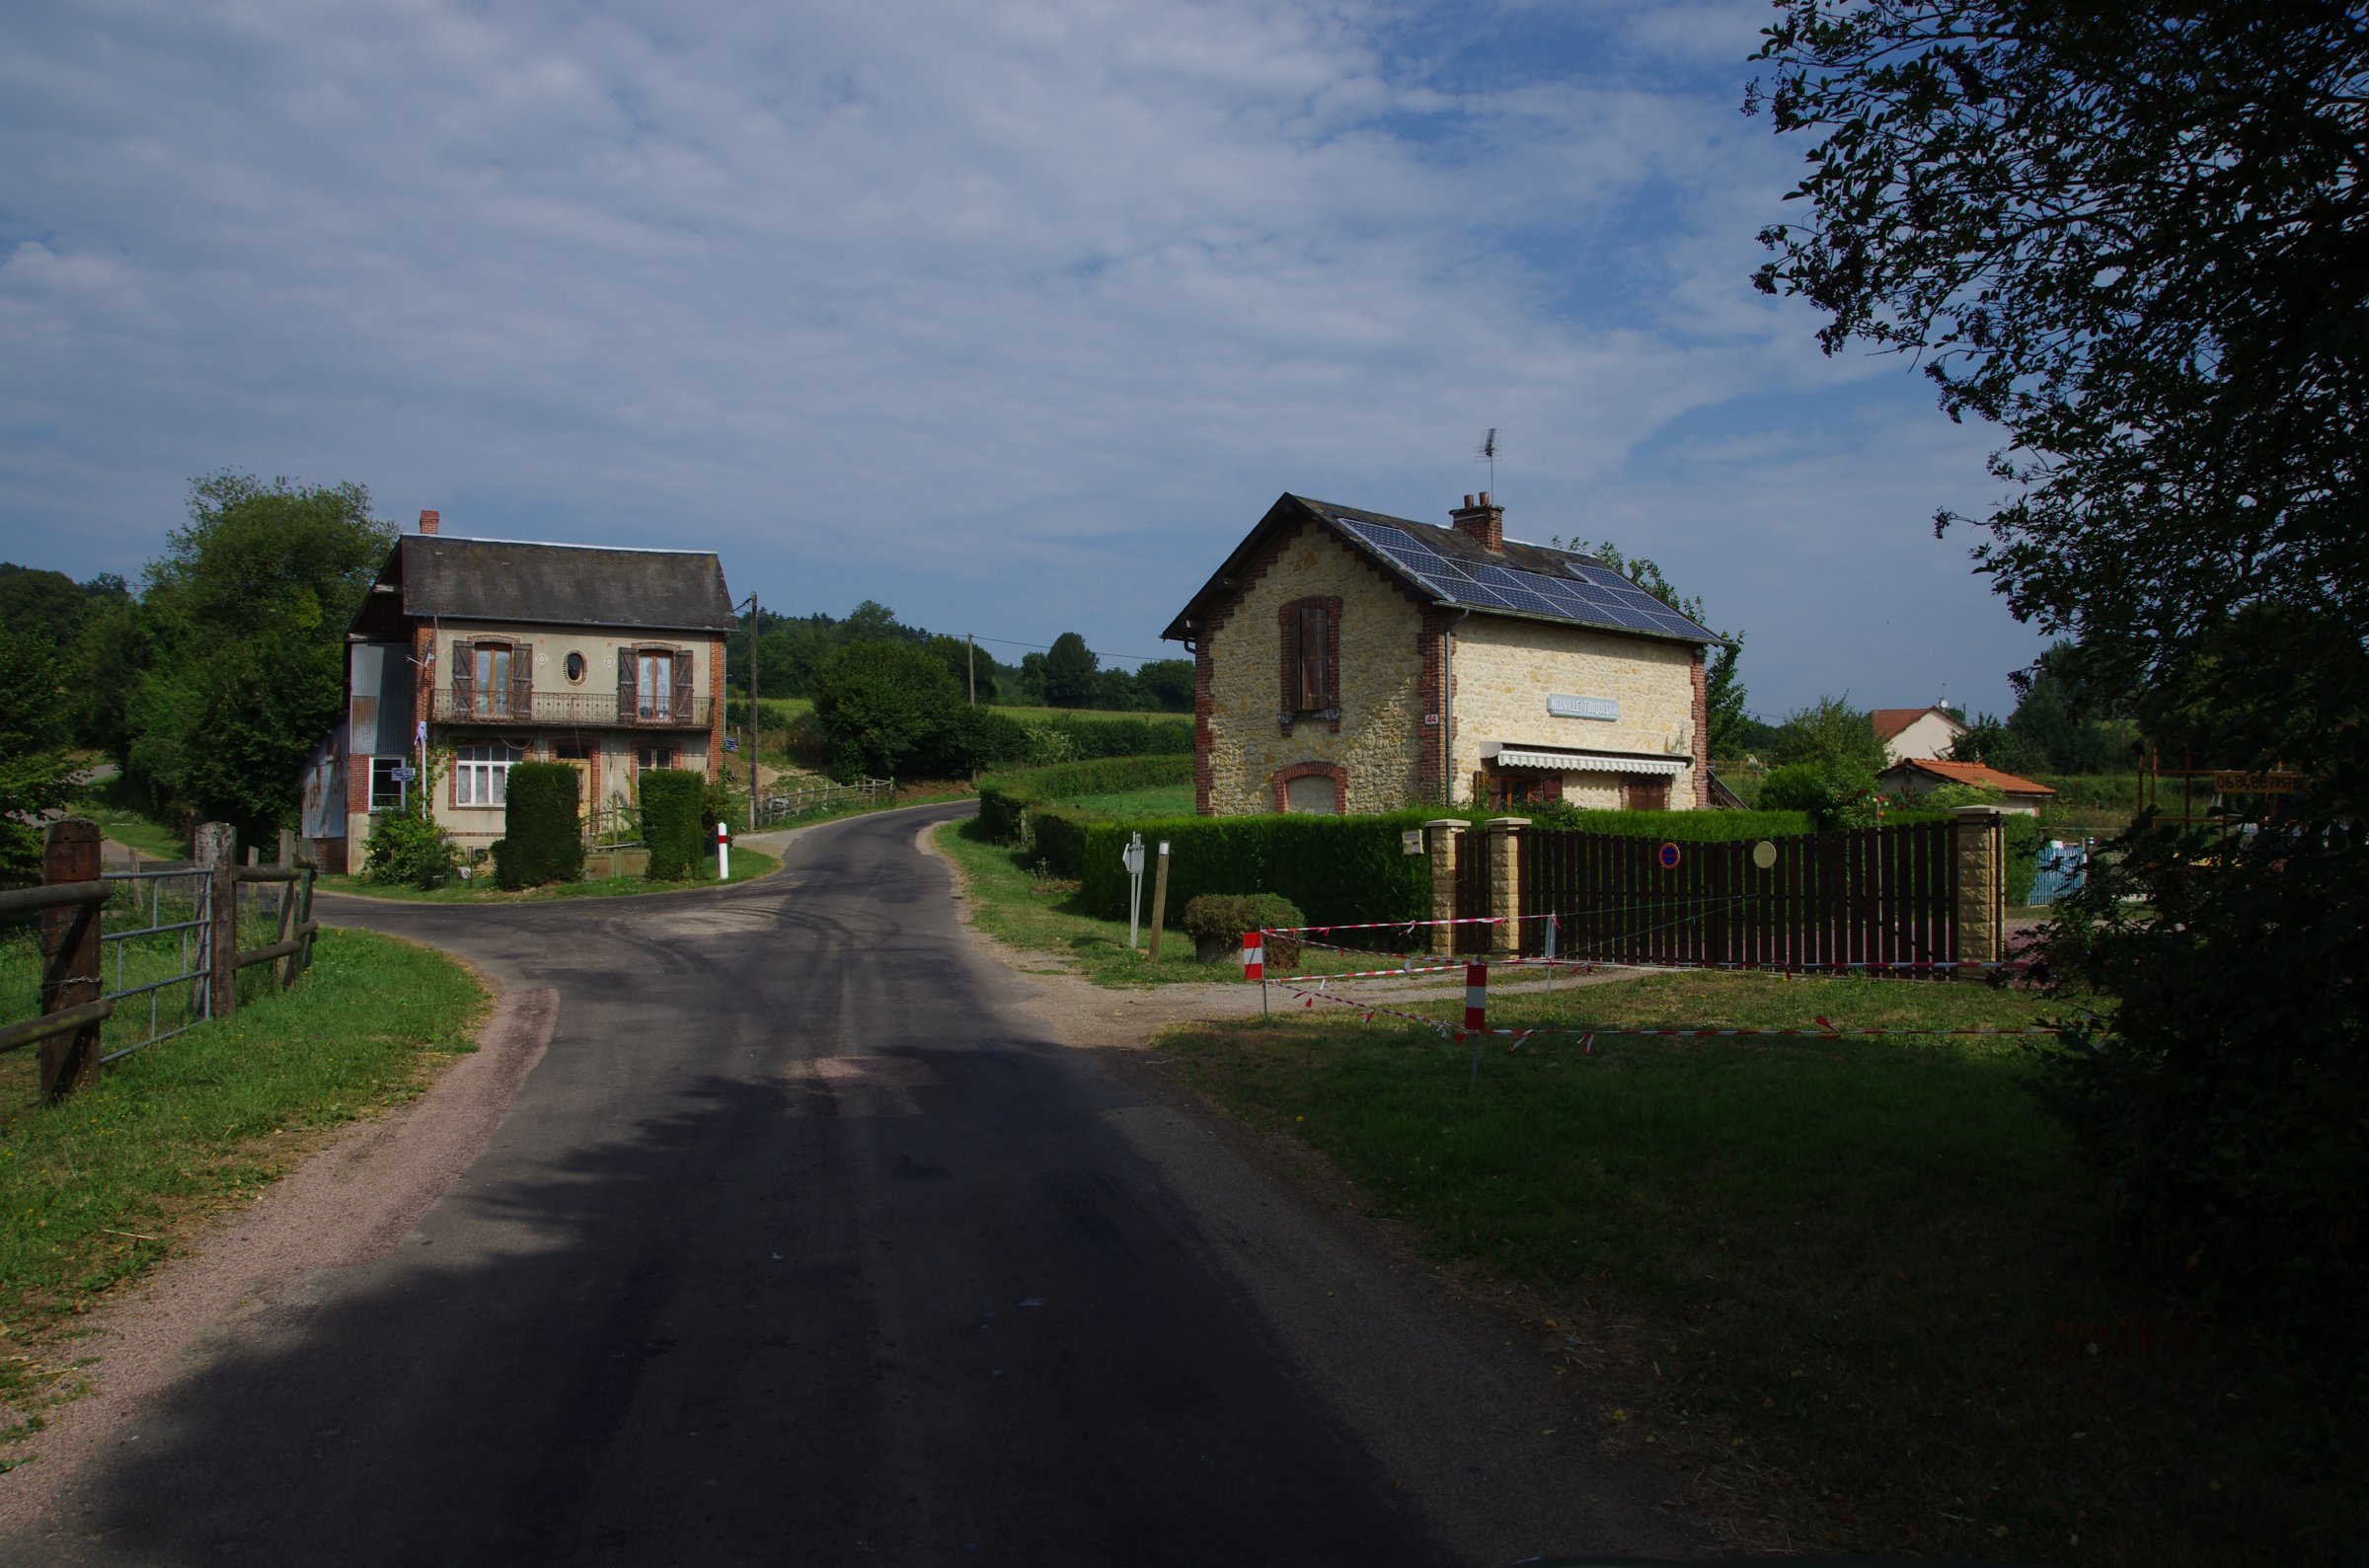 Gare neuville s touques.jpg